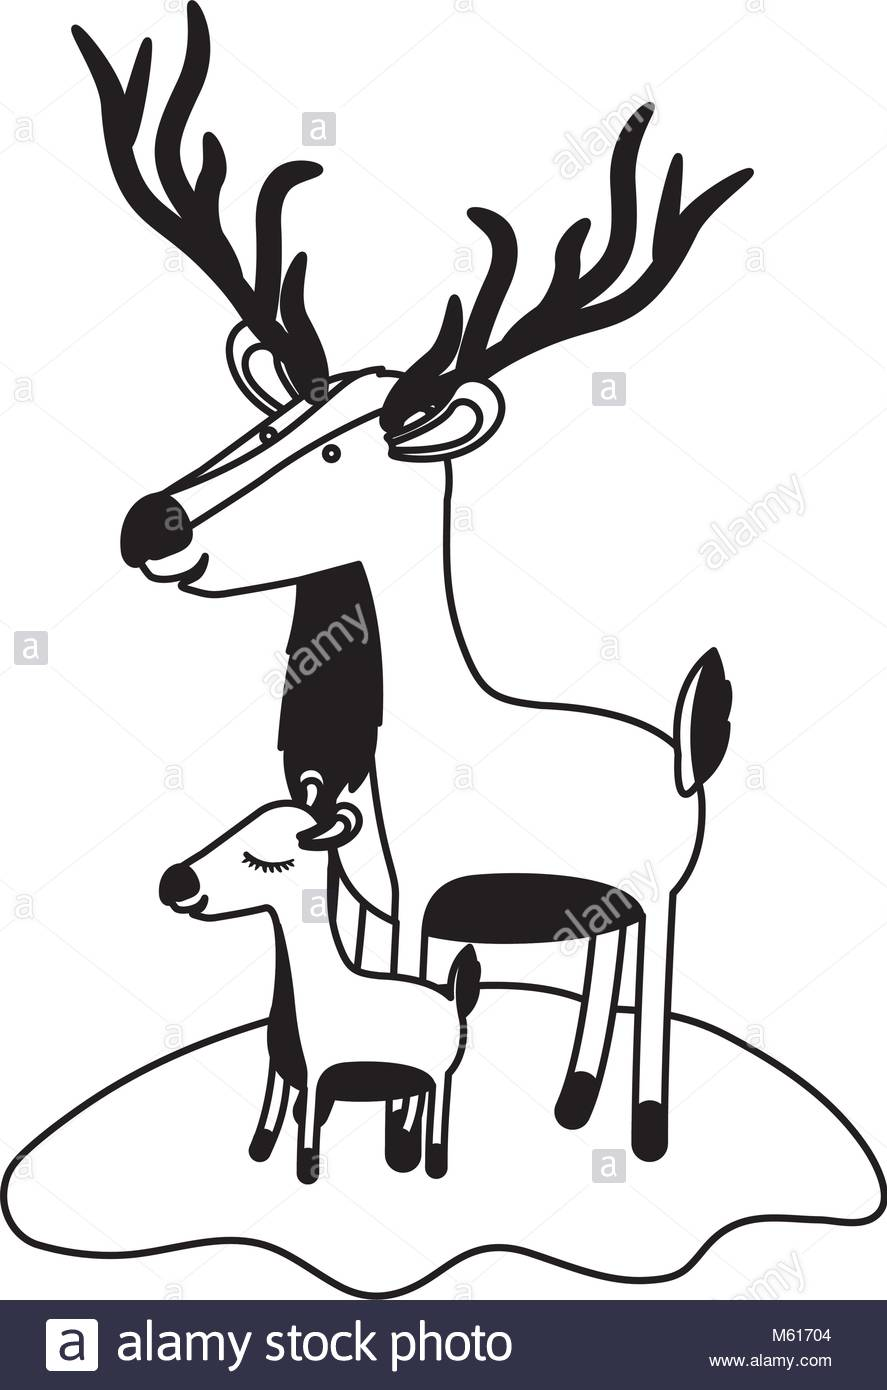 887x1390 Cartoon Deer And Calf Over Grass In Black Silhouette Stock Vector